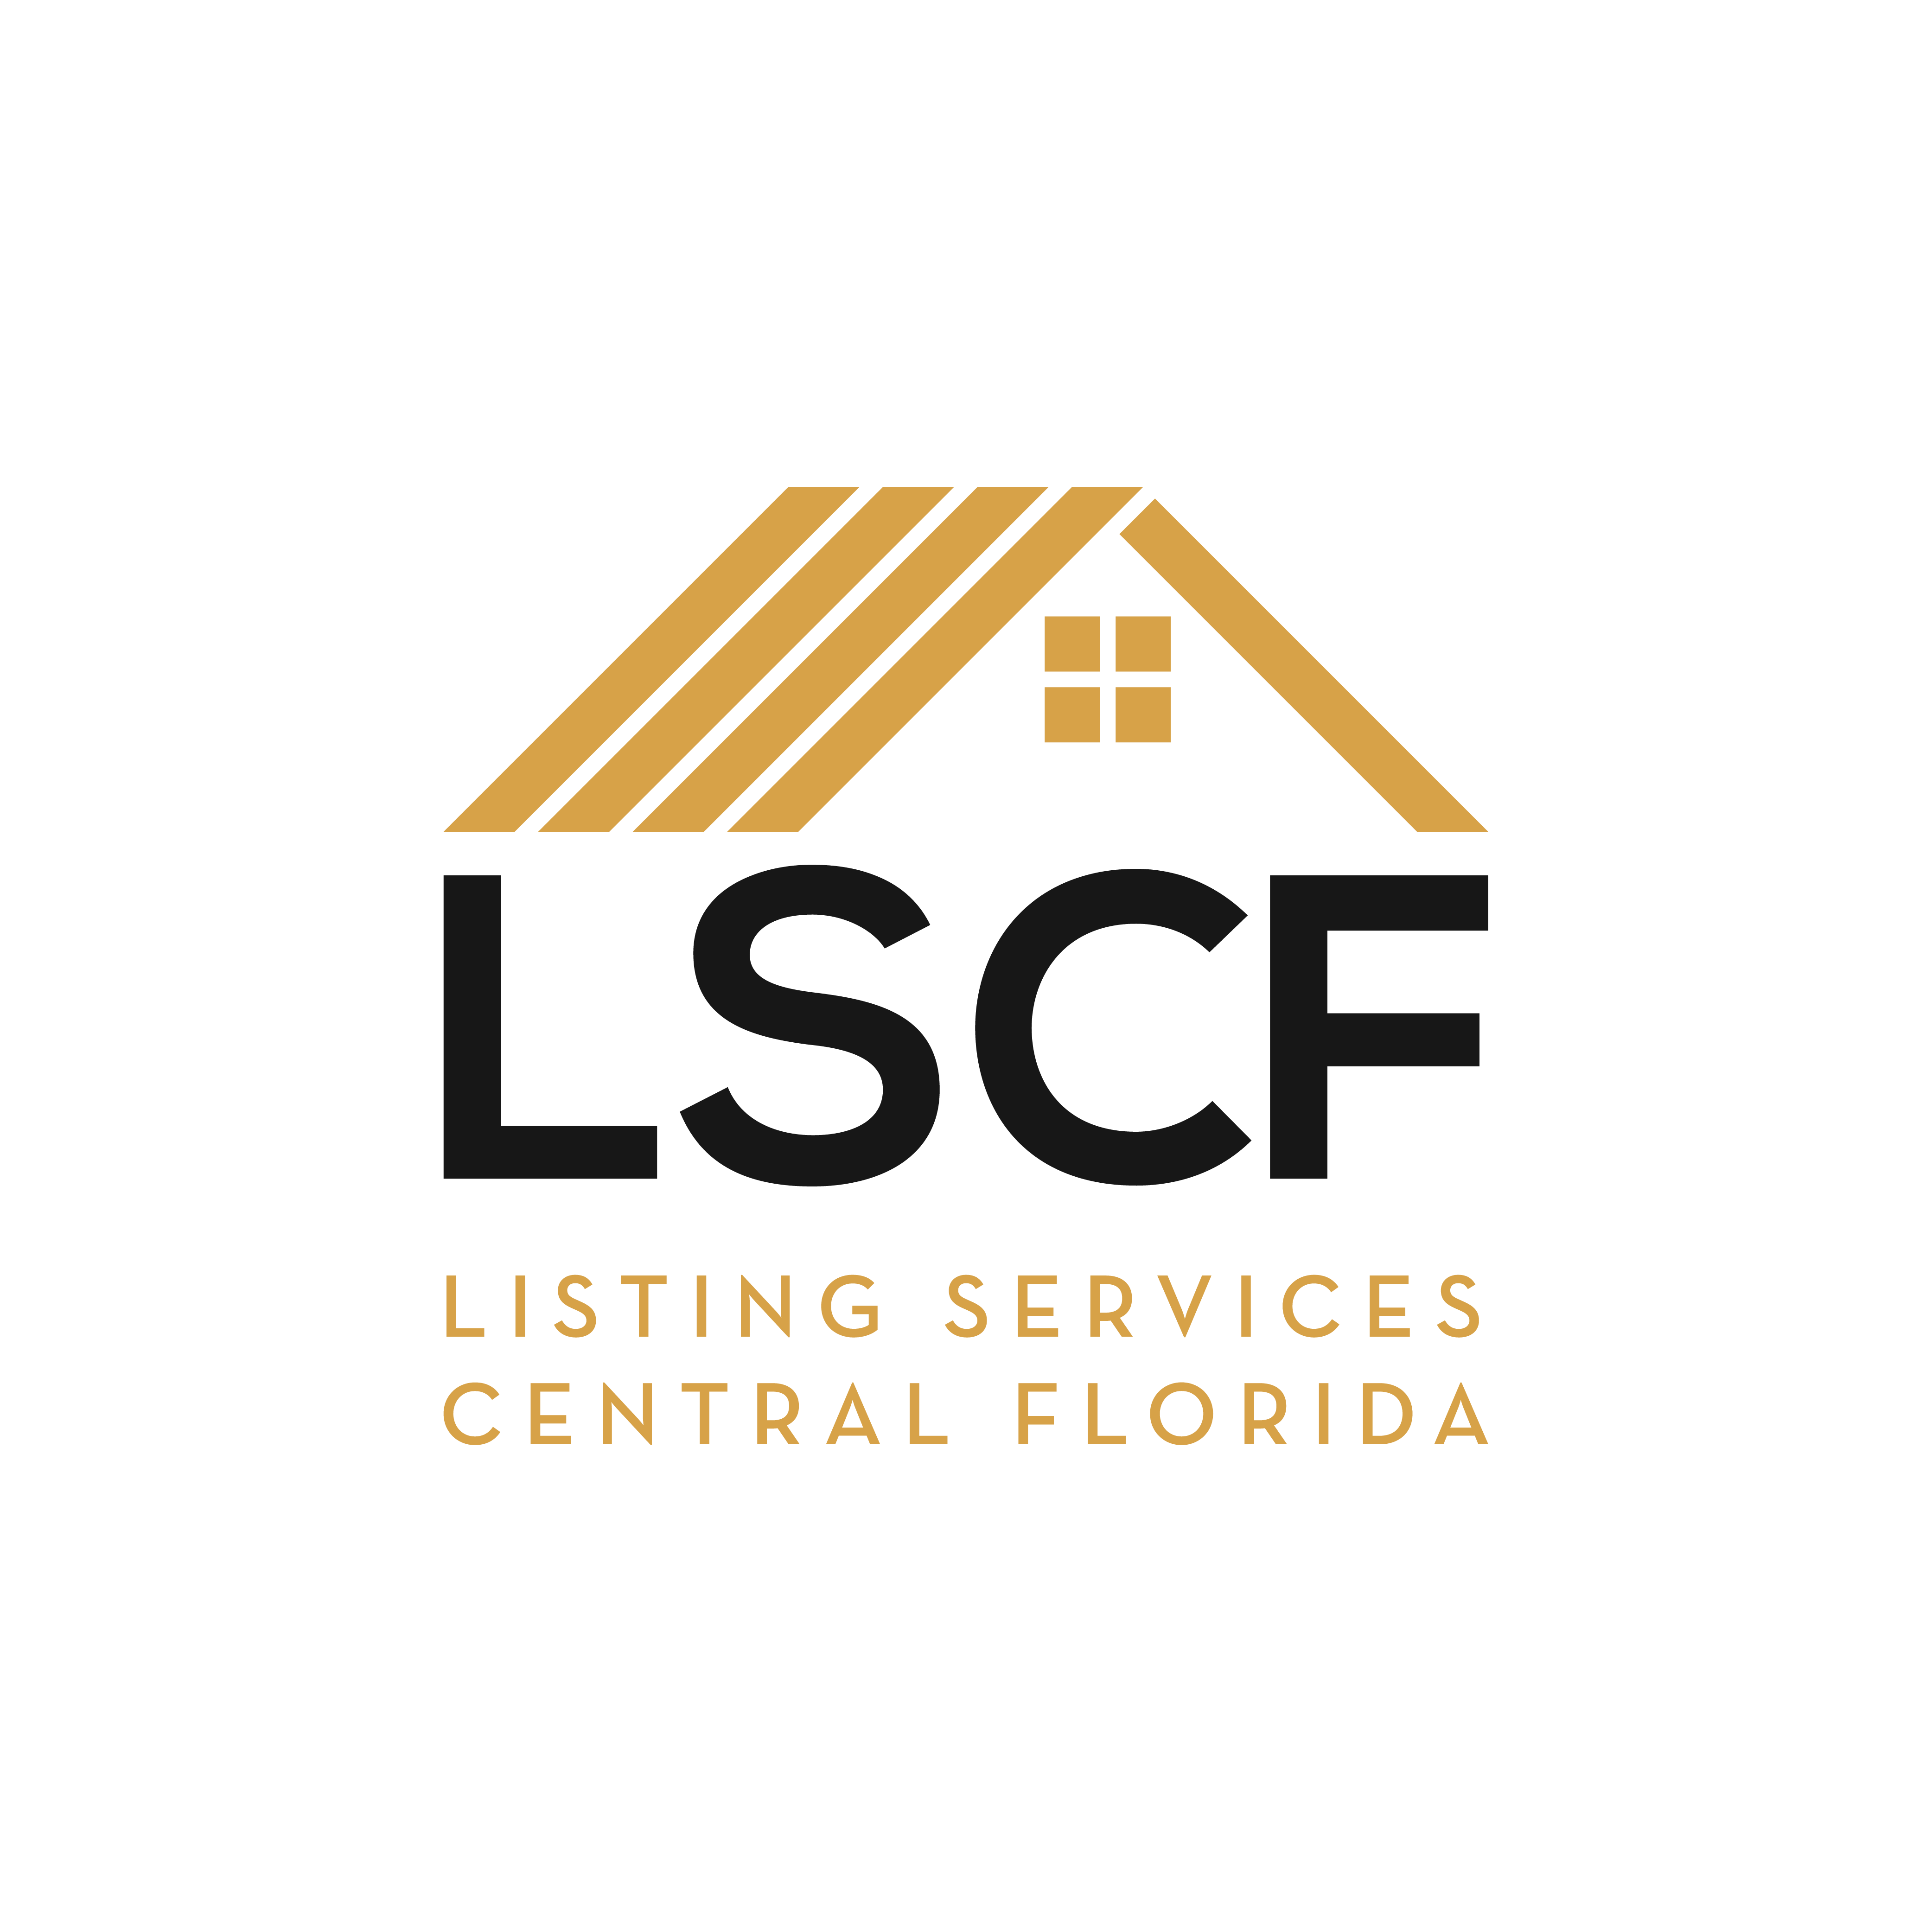 LISTING SERVICES CENTRAL FLORIDA